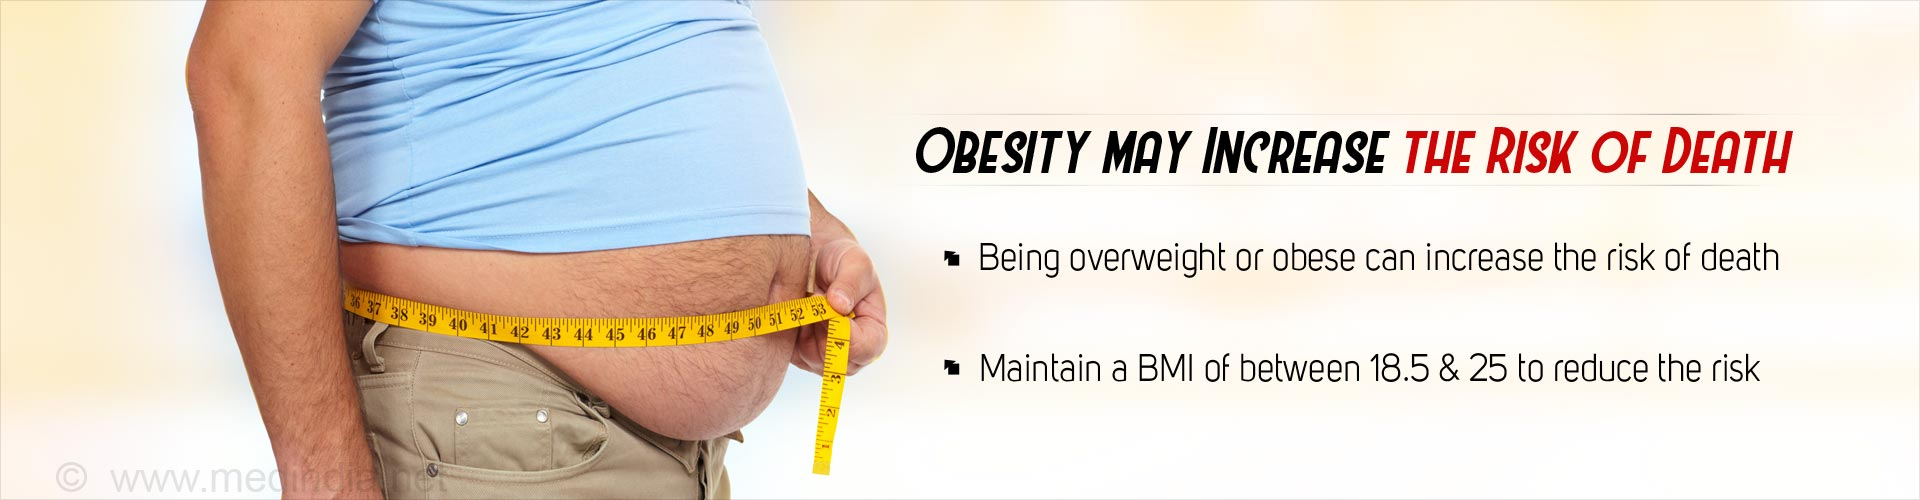 Being Overweight Increases Risk of Death